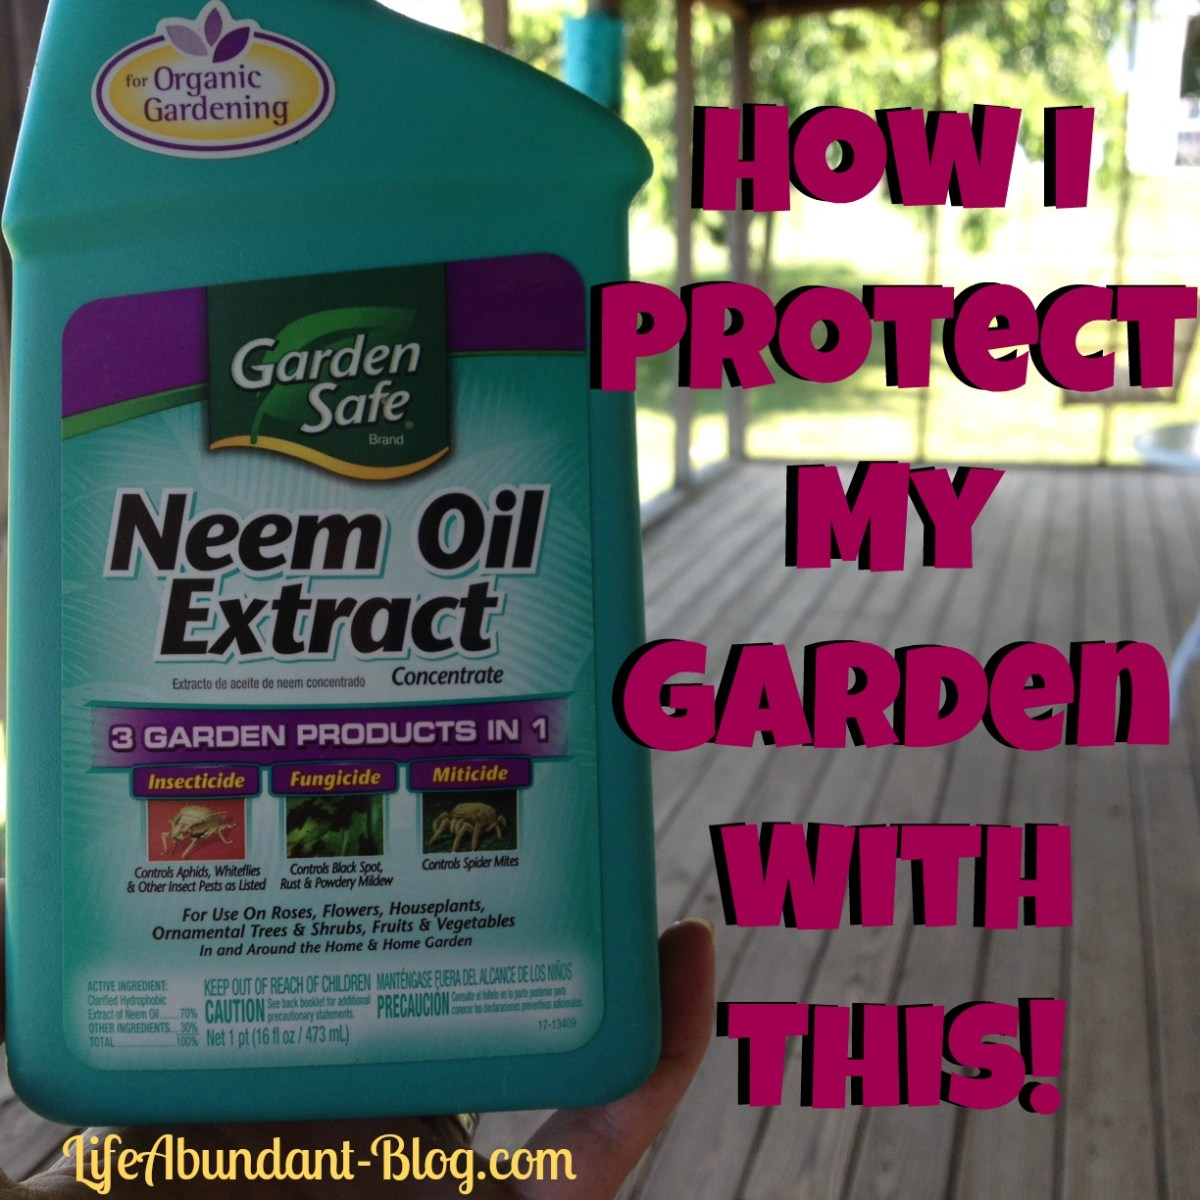 How I Protect My Garden with Organic Neem Oil Extract {plus other gardening tips!}